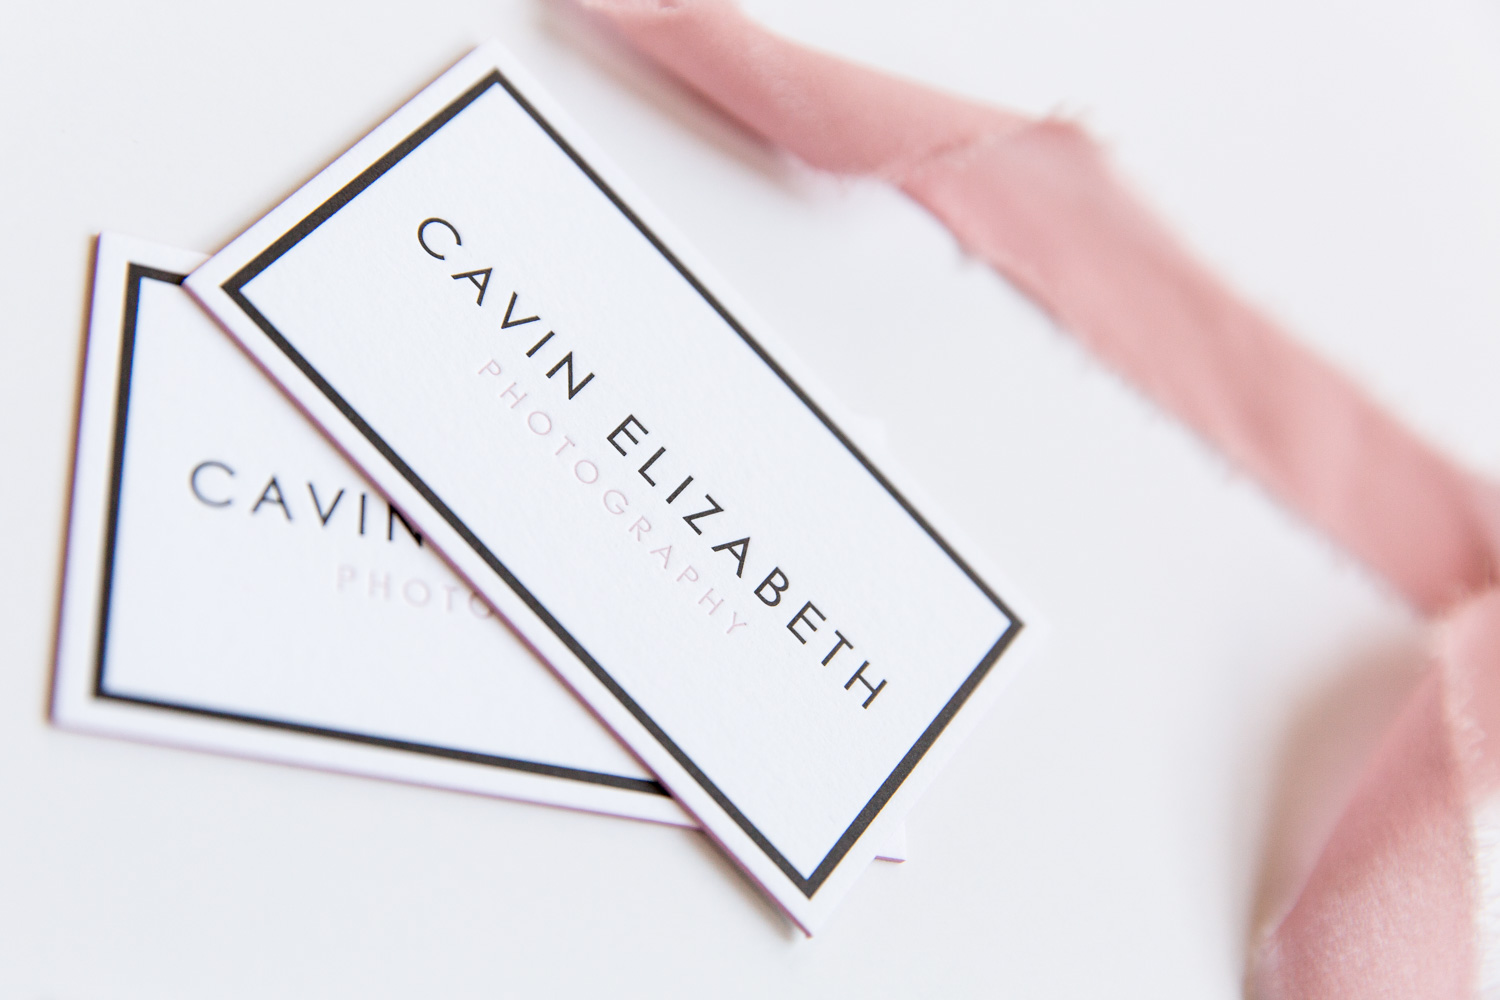 Cavin elizabeth letterpress business cards clove st press reheart Gallery